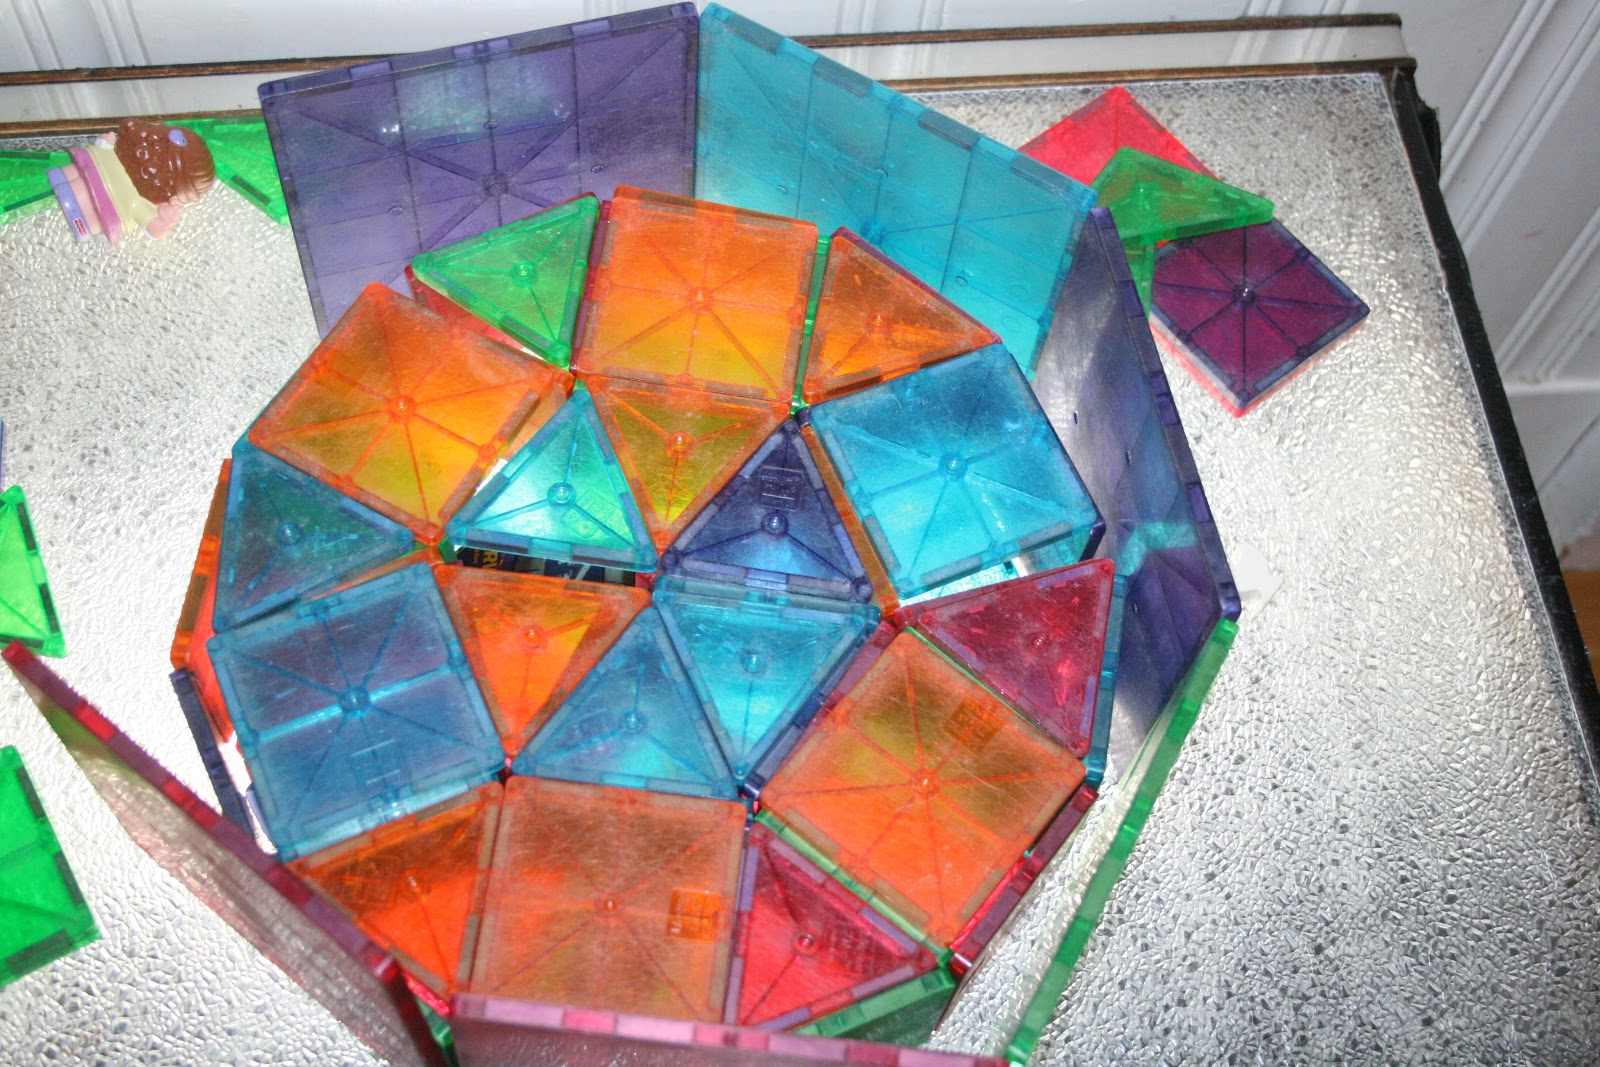 design of magna tiles on the light table made by the children